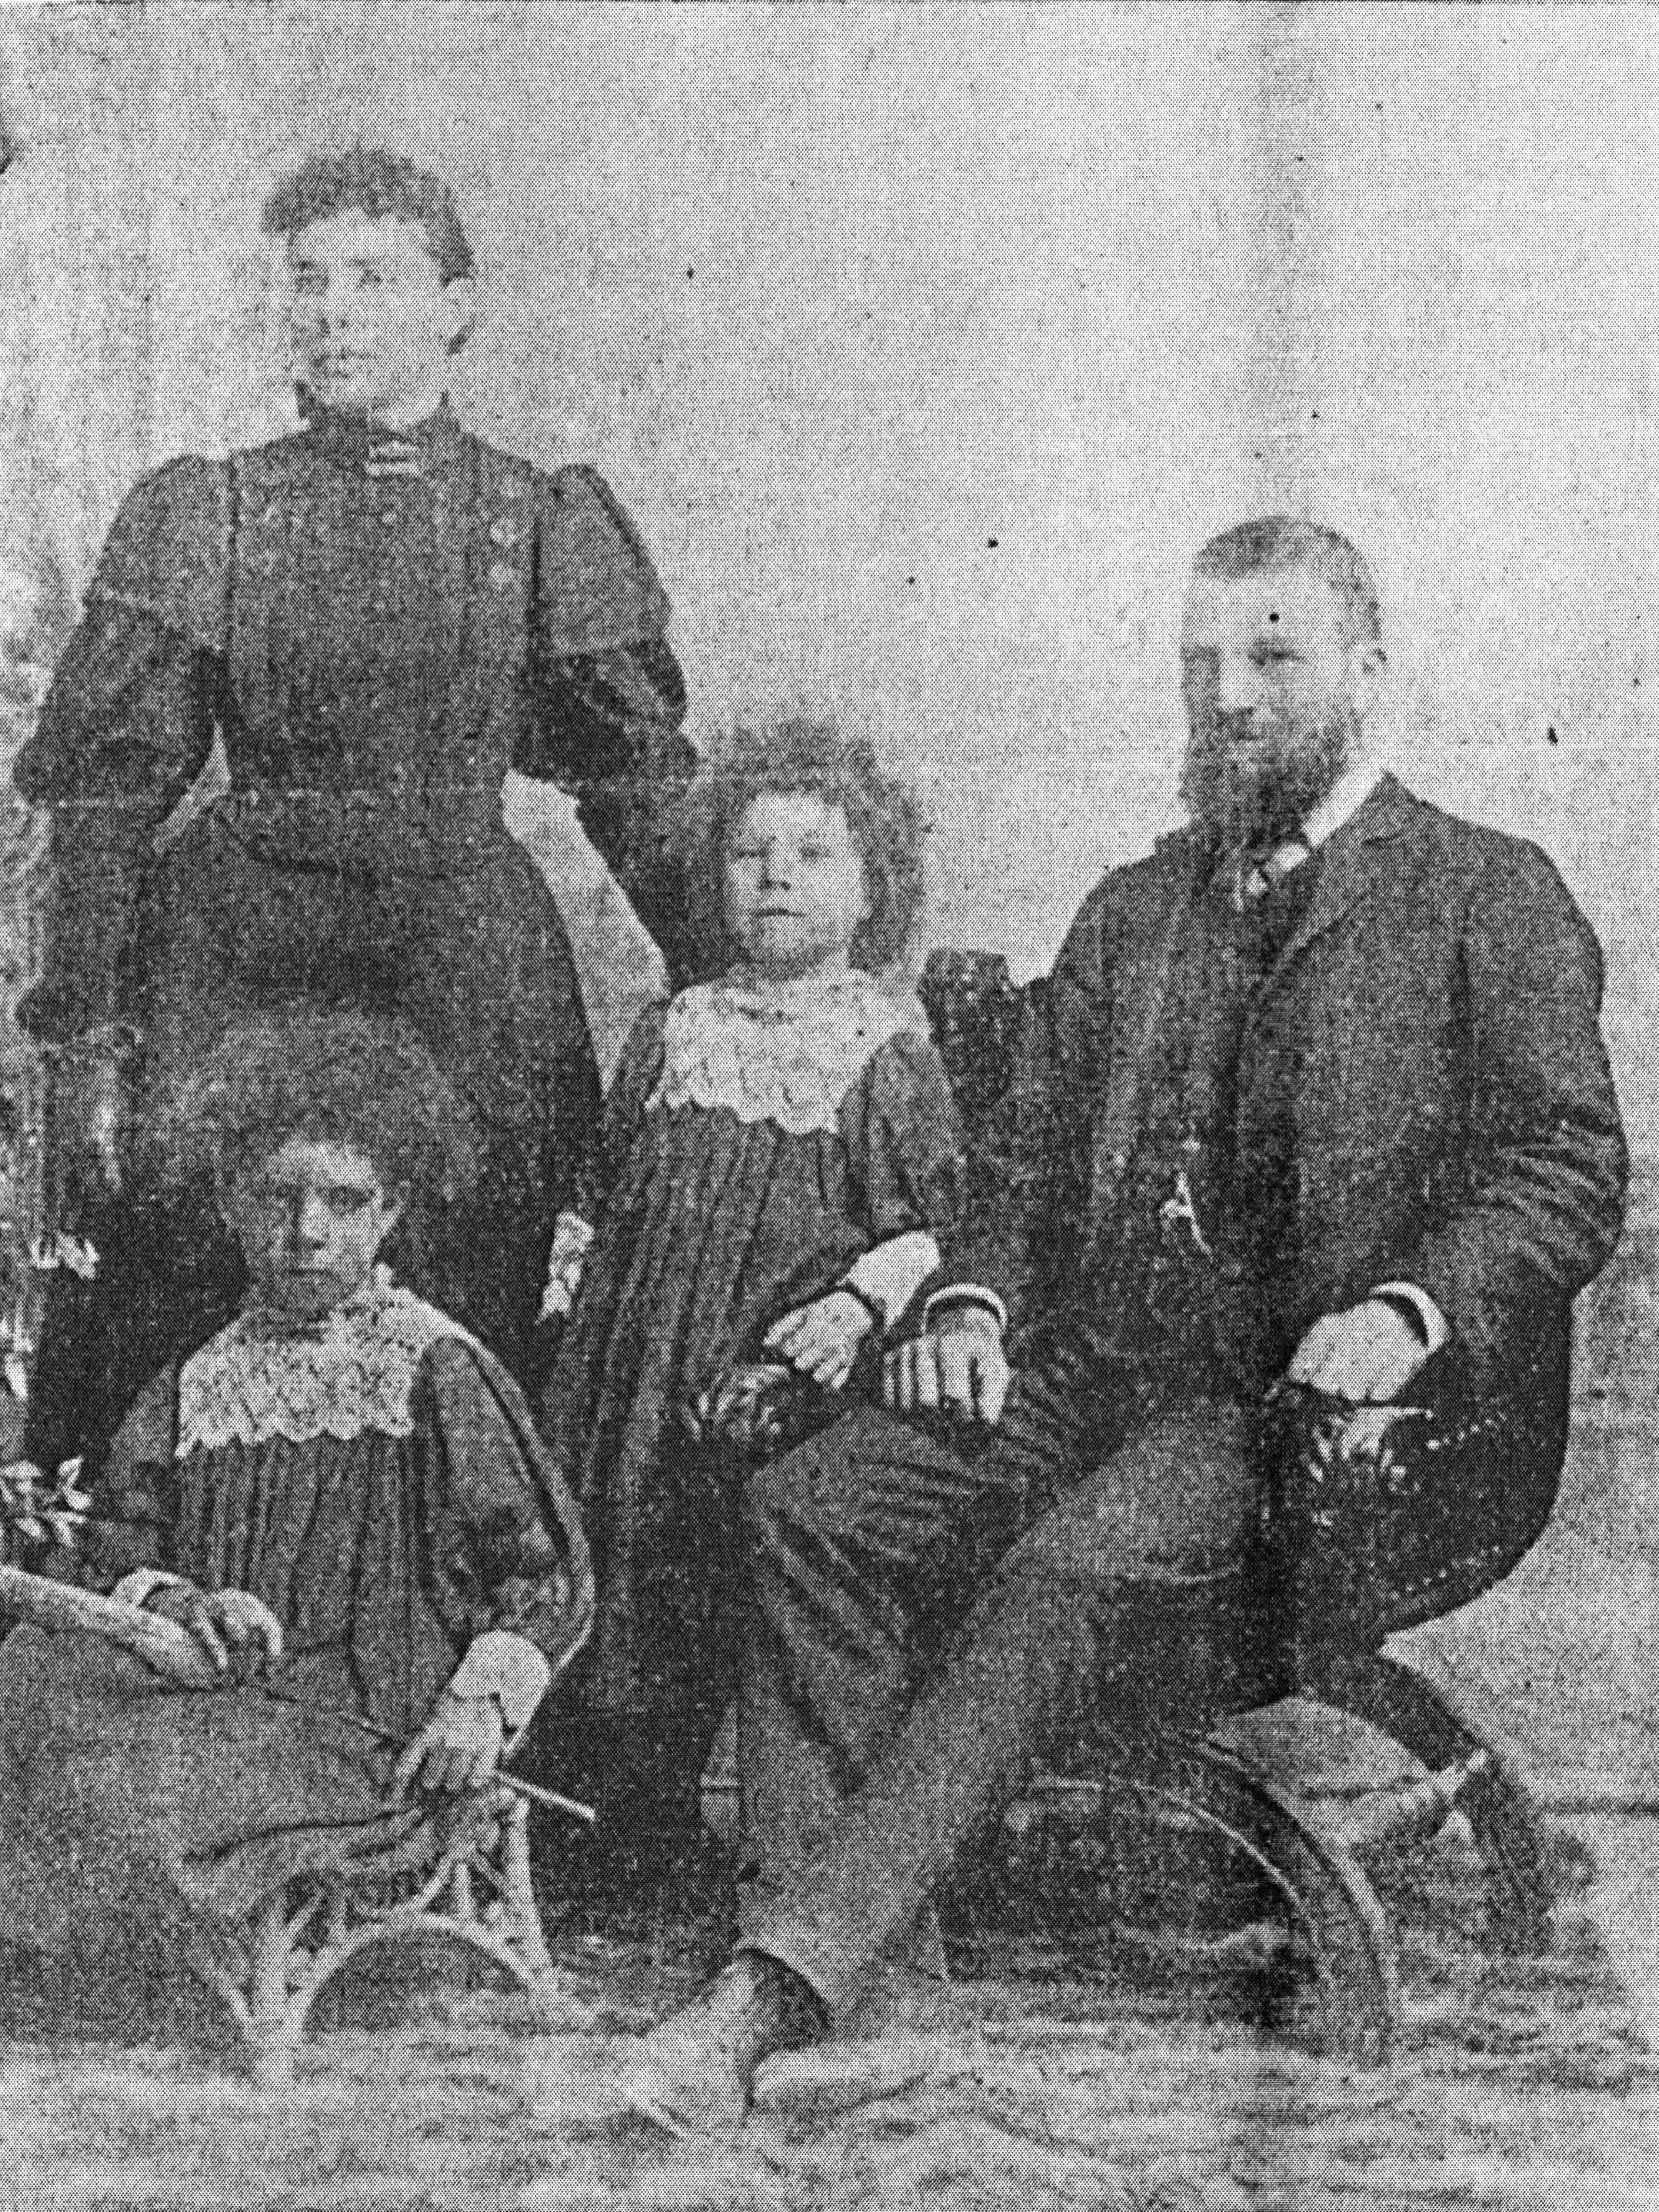 Rosalinda Fox with her husband, John, and daughters Violet (left) and Esther (centre), in West Australian Sunday Times, 5 March 1899, also from Murder on Gallop's Gardens, Dalkeith, by Robert Couzens.